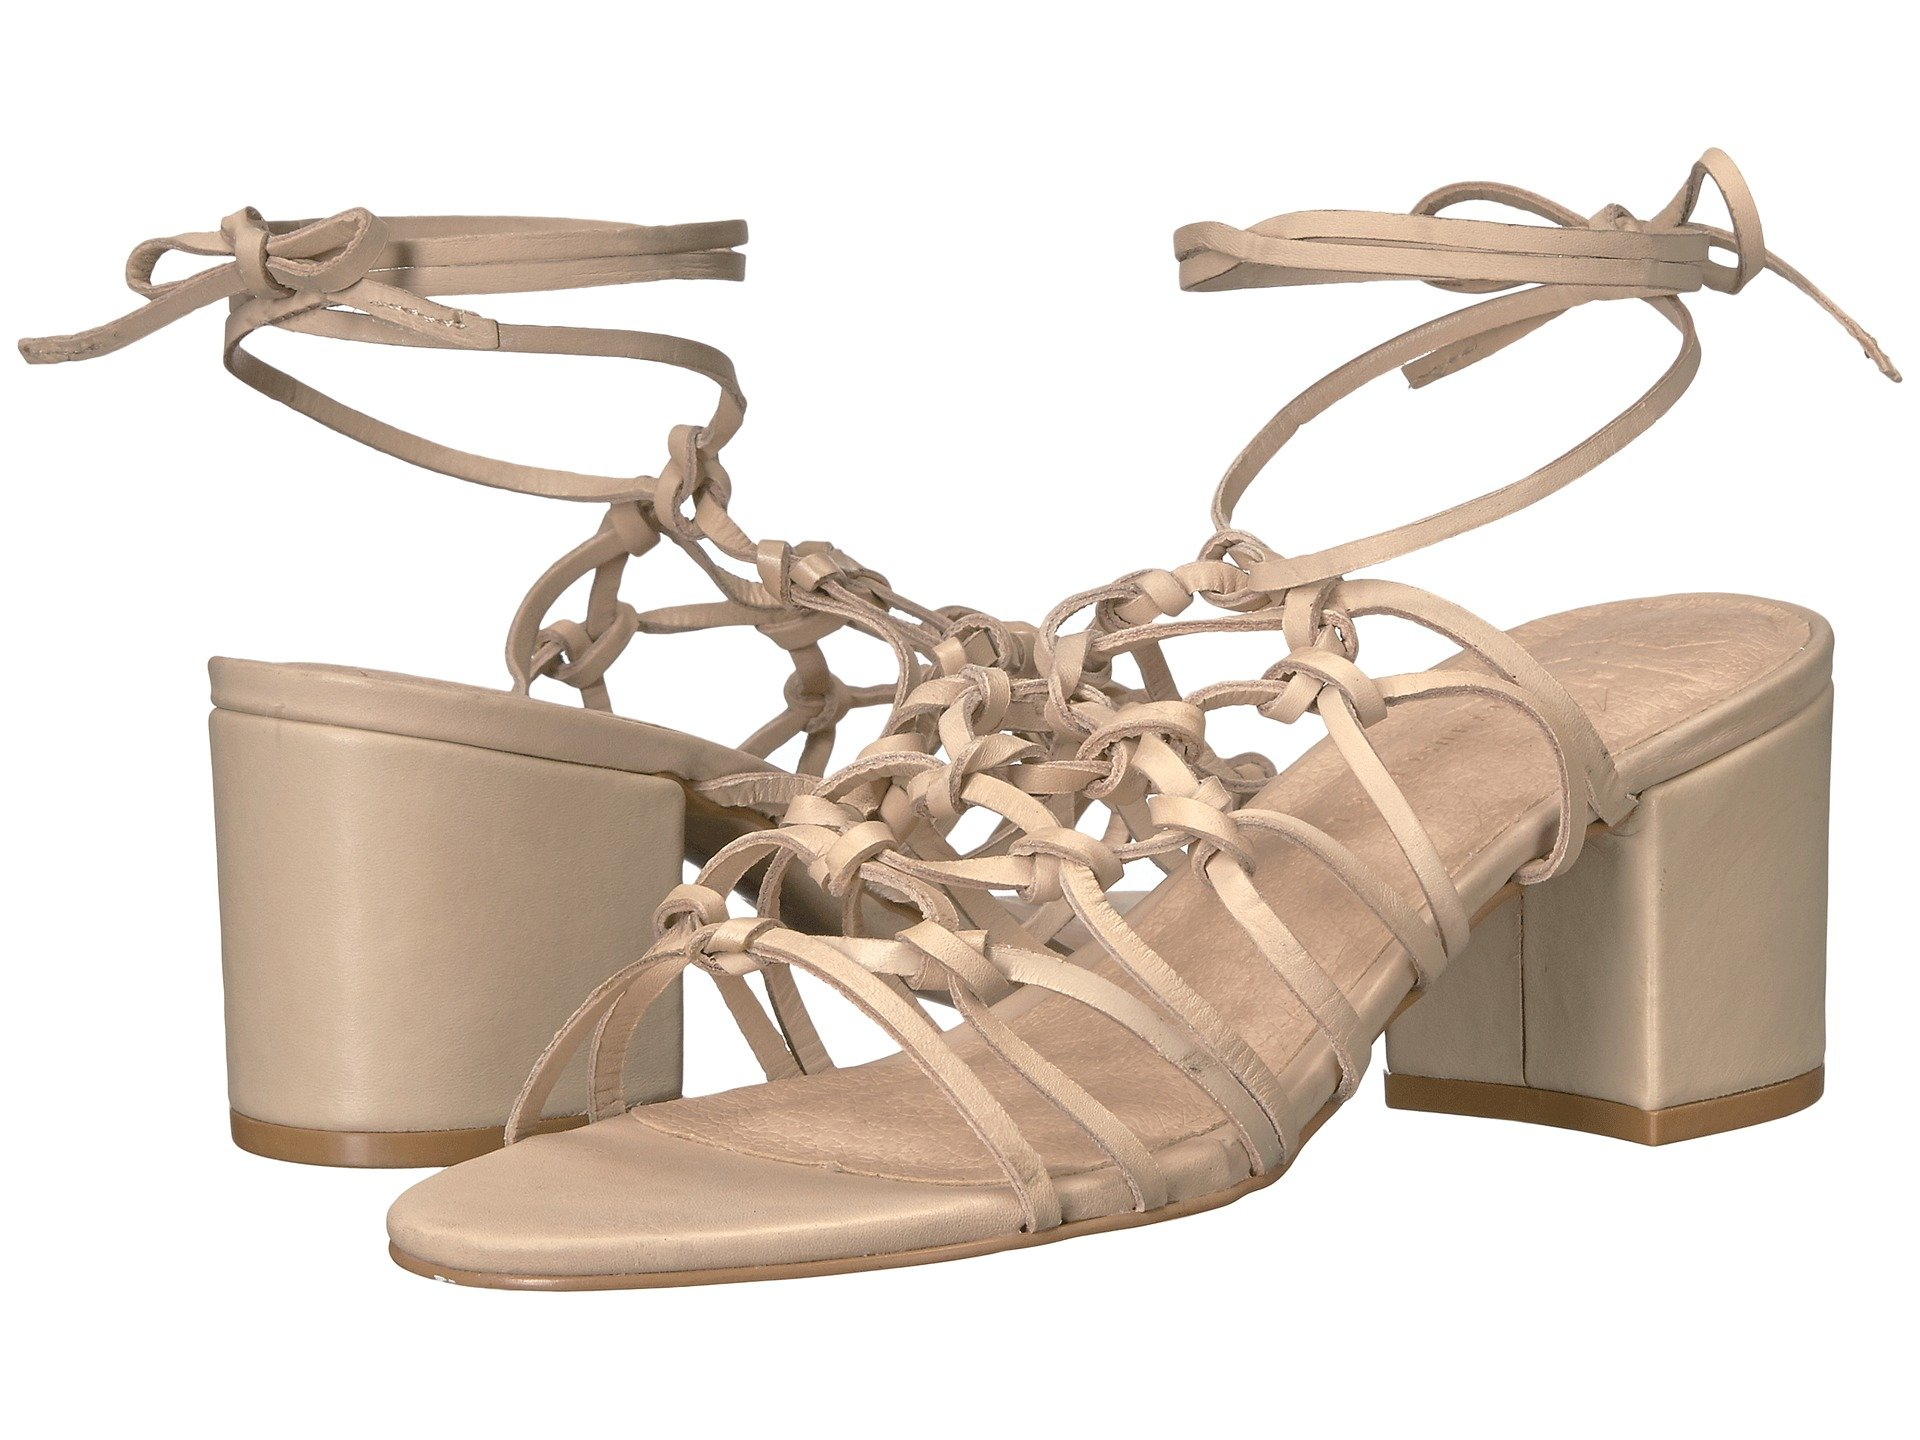 LFL BY LUST FOR LIFE Simple, Nude Leather